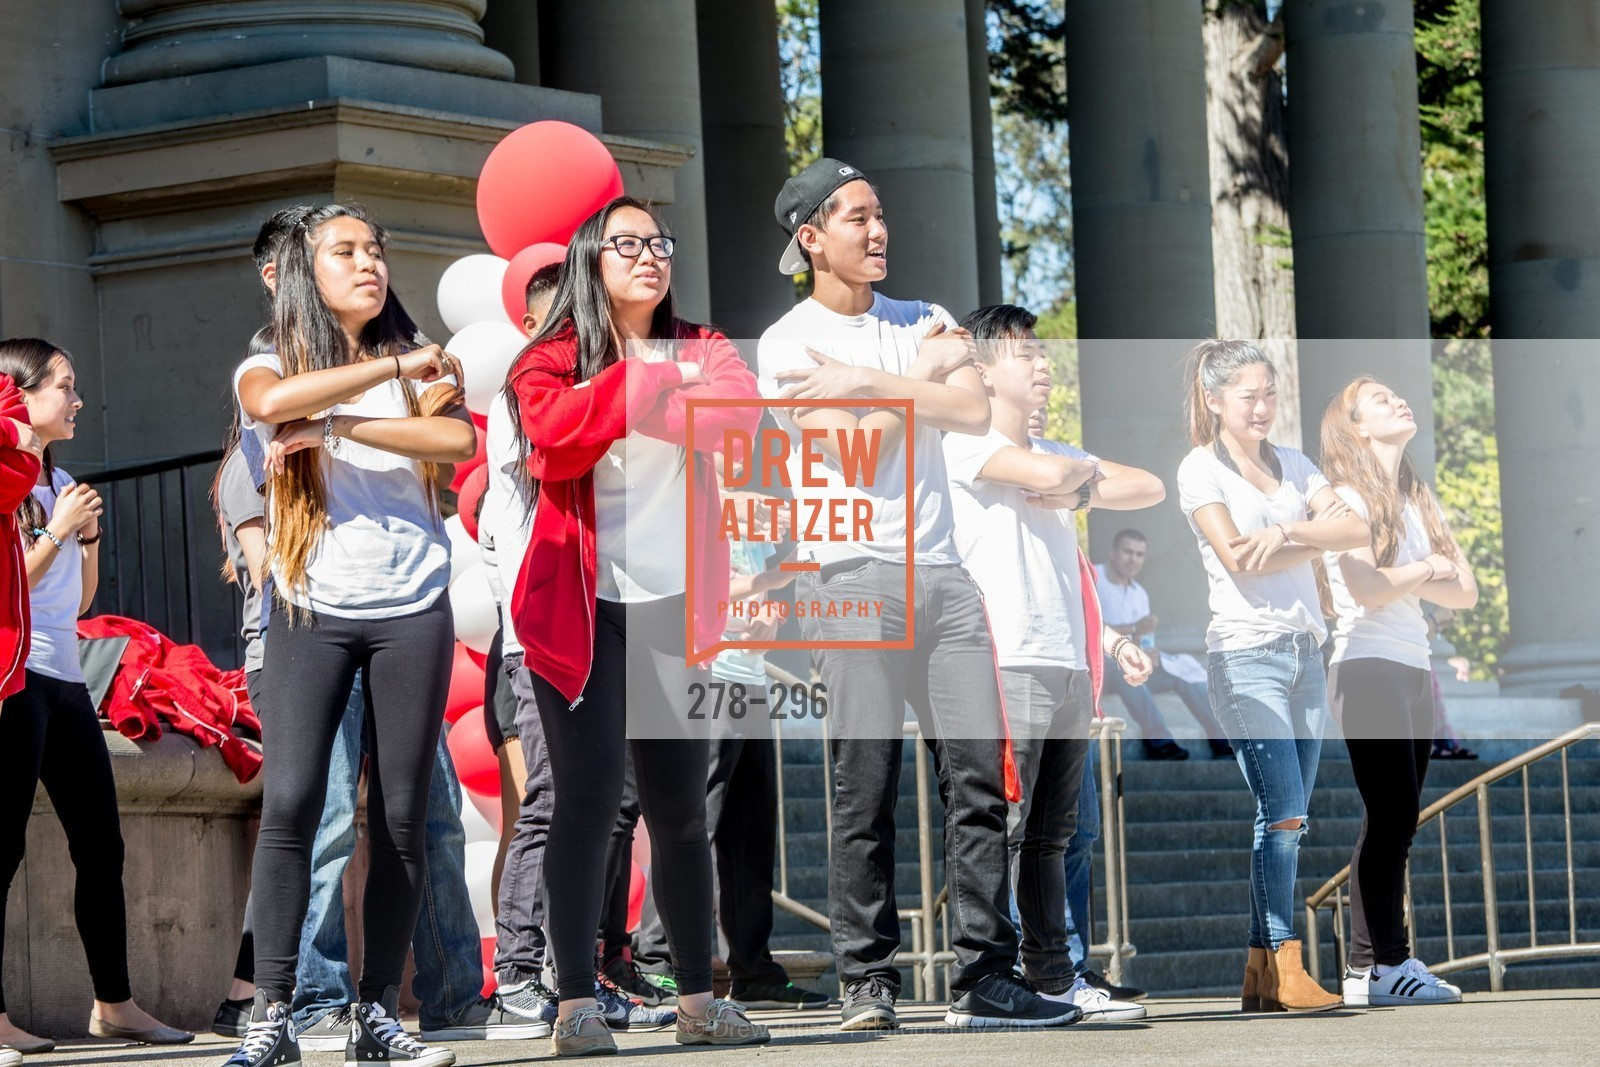 Performance, American Liver Foundation - San Francisco Liver Life Walk 2015, September 20th, 2015, Photo,Drew Altizer, Drew Altizer Photography, full-service event agency, private events, San Francisco photographer, photographer California